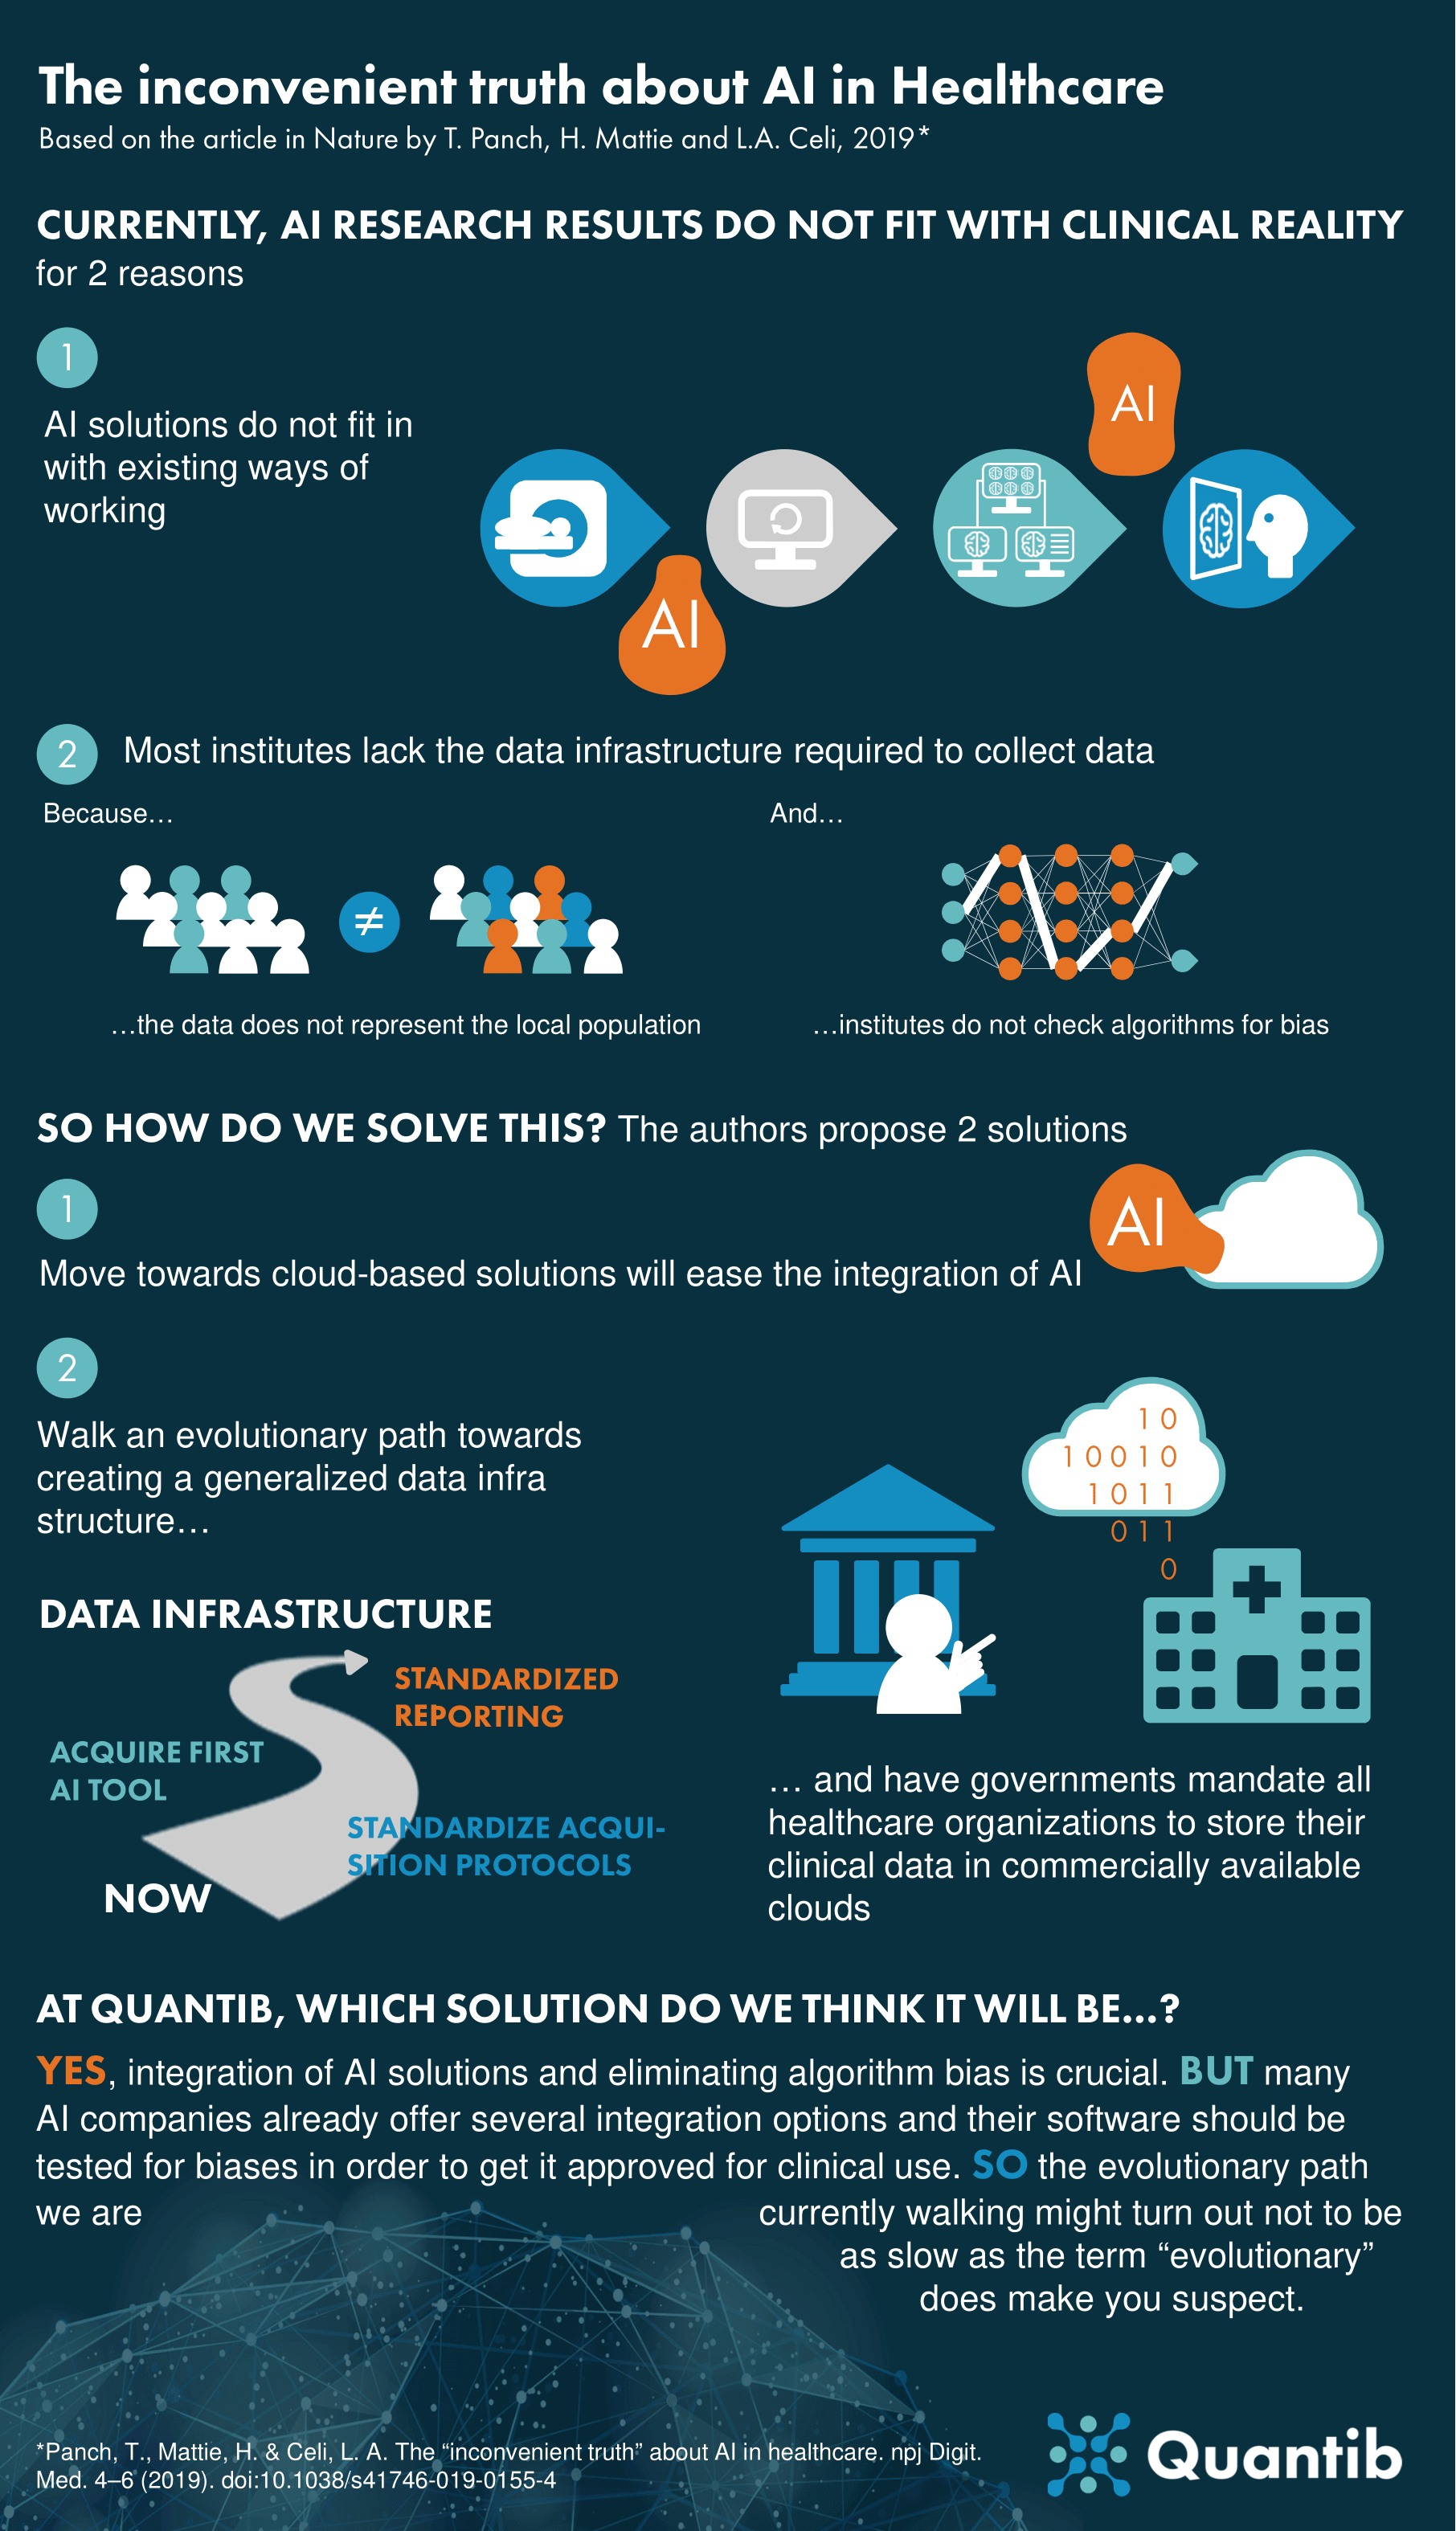 190903 - Infographic - The inconvenient truth about AI in healthcare v3-1 (1) (1) (1)